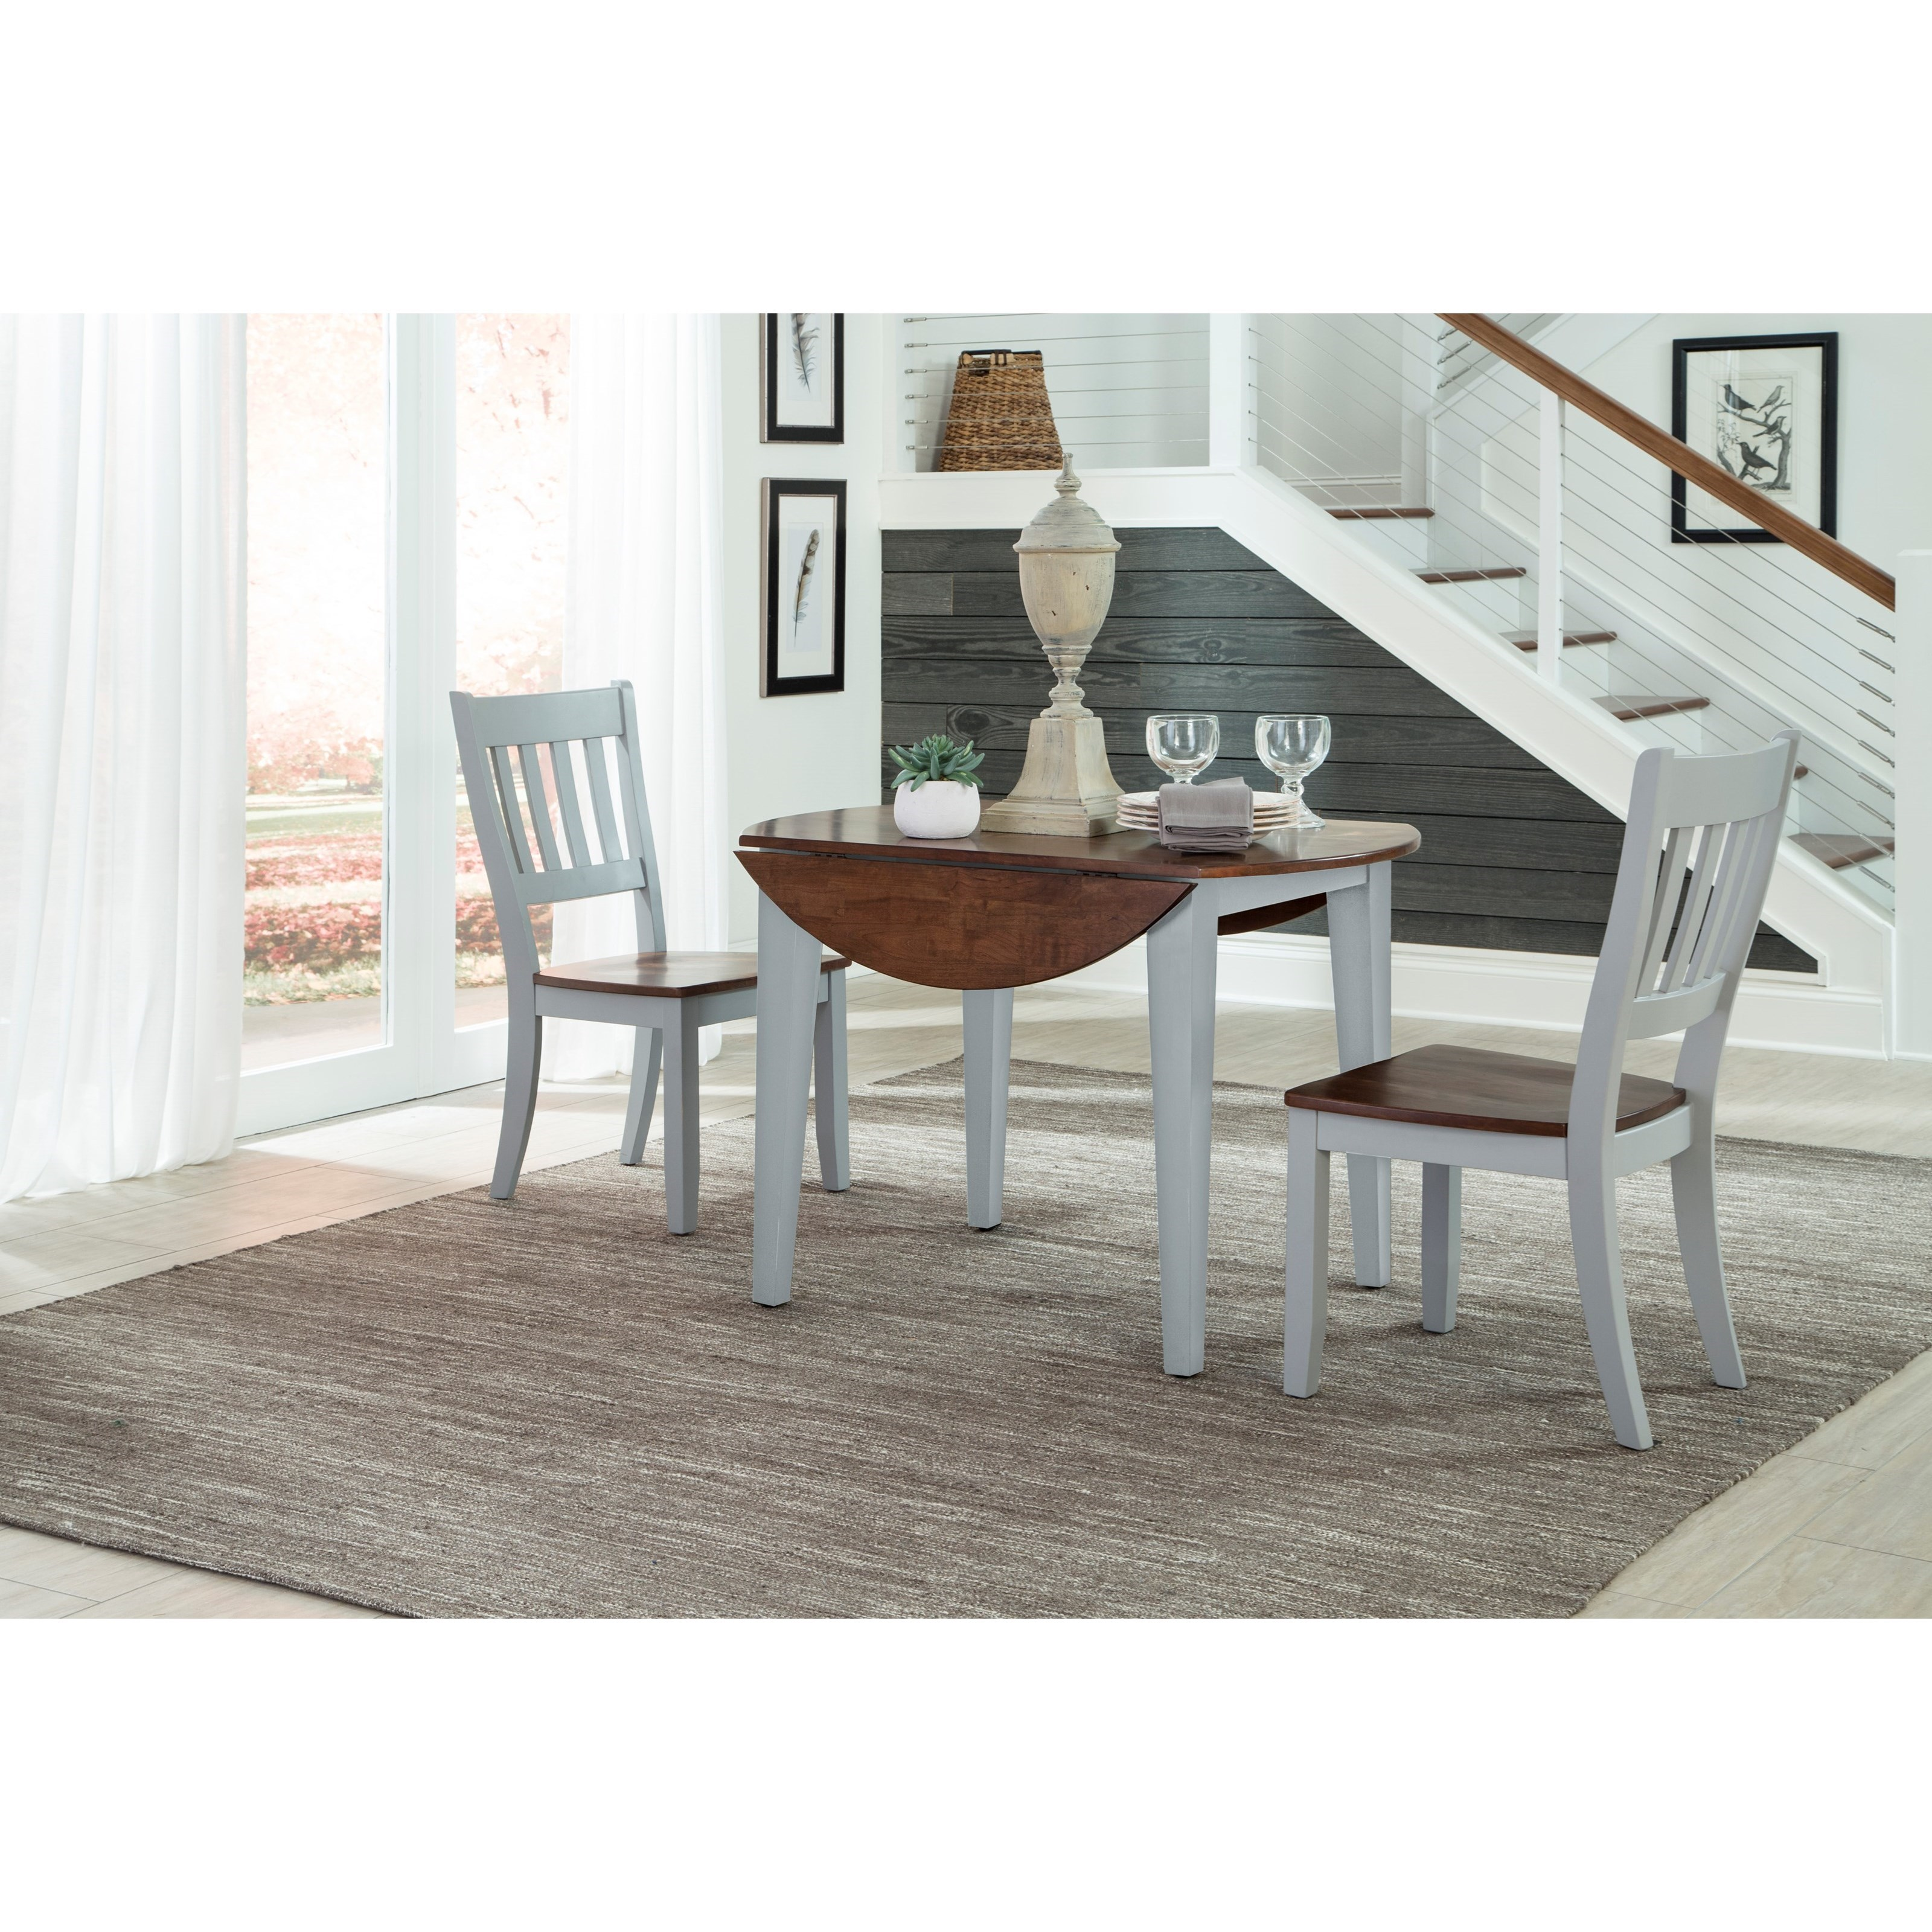 Intercon Small Space 3 Piece Drop Leaf Table And Slat Back